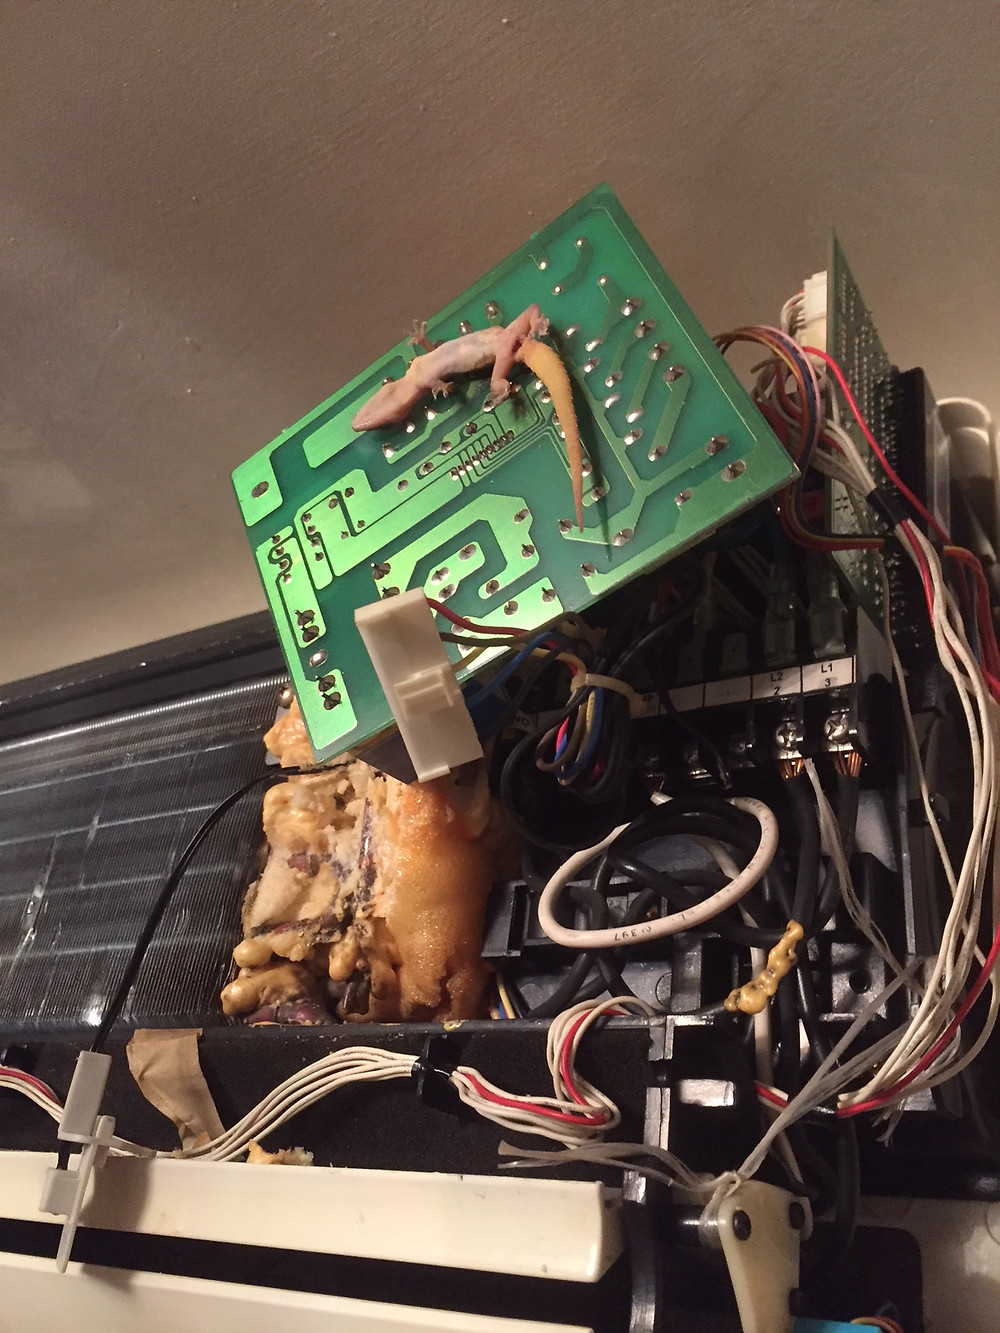 PCB damaged by Vermin